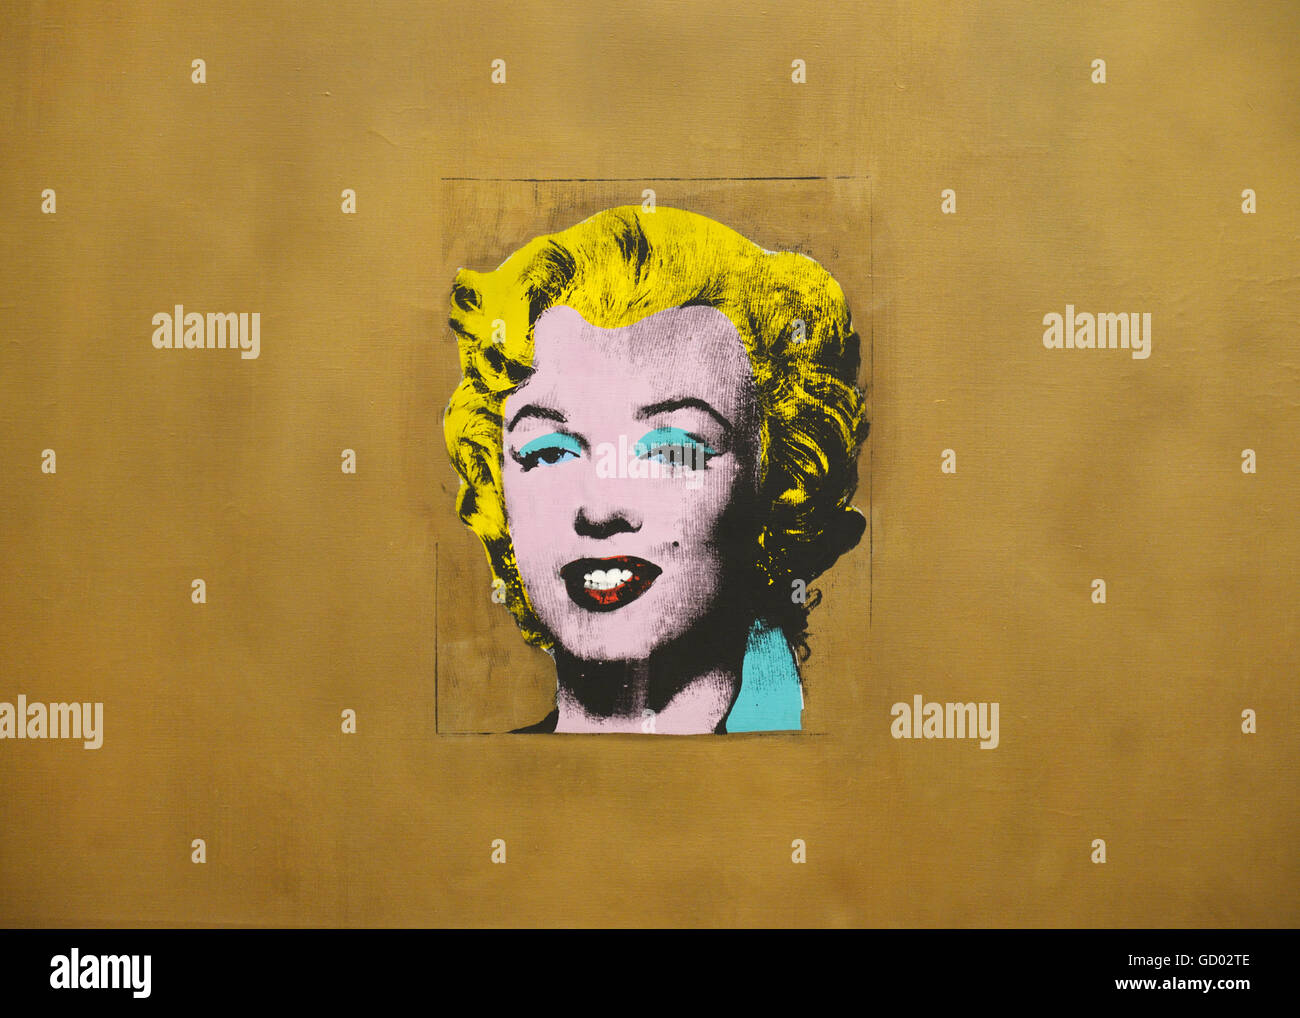 Marilyn Pop Art Andy Warhol Andy Warhol Marilyn Stock Photos And Andy Warhol Marilyn